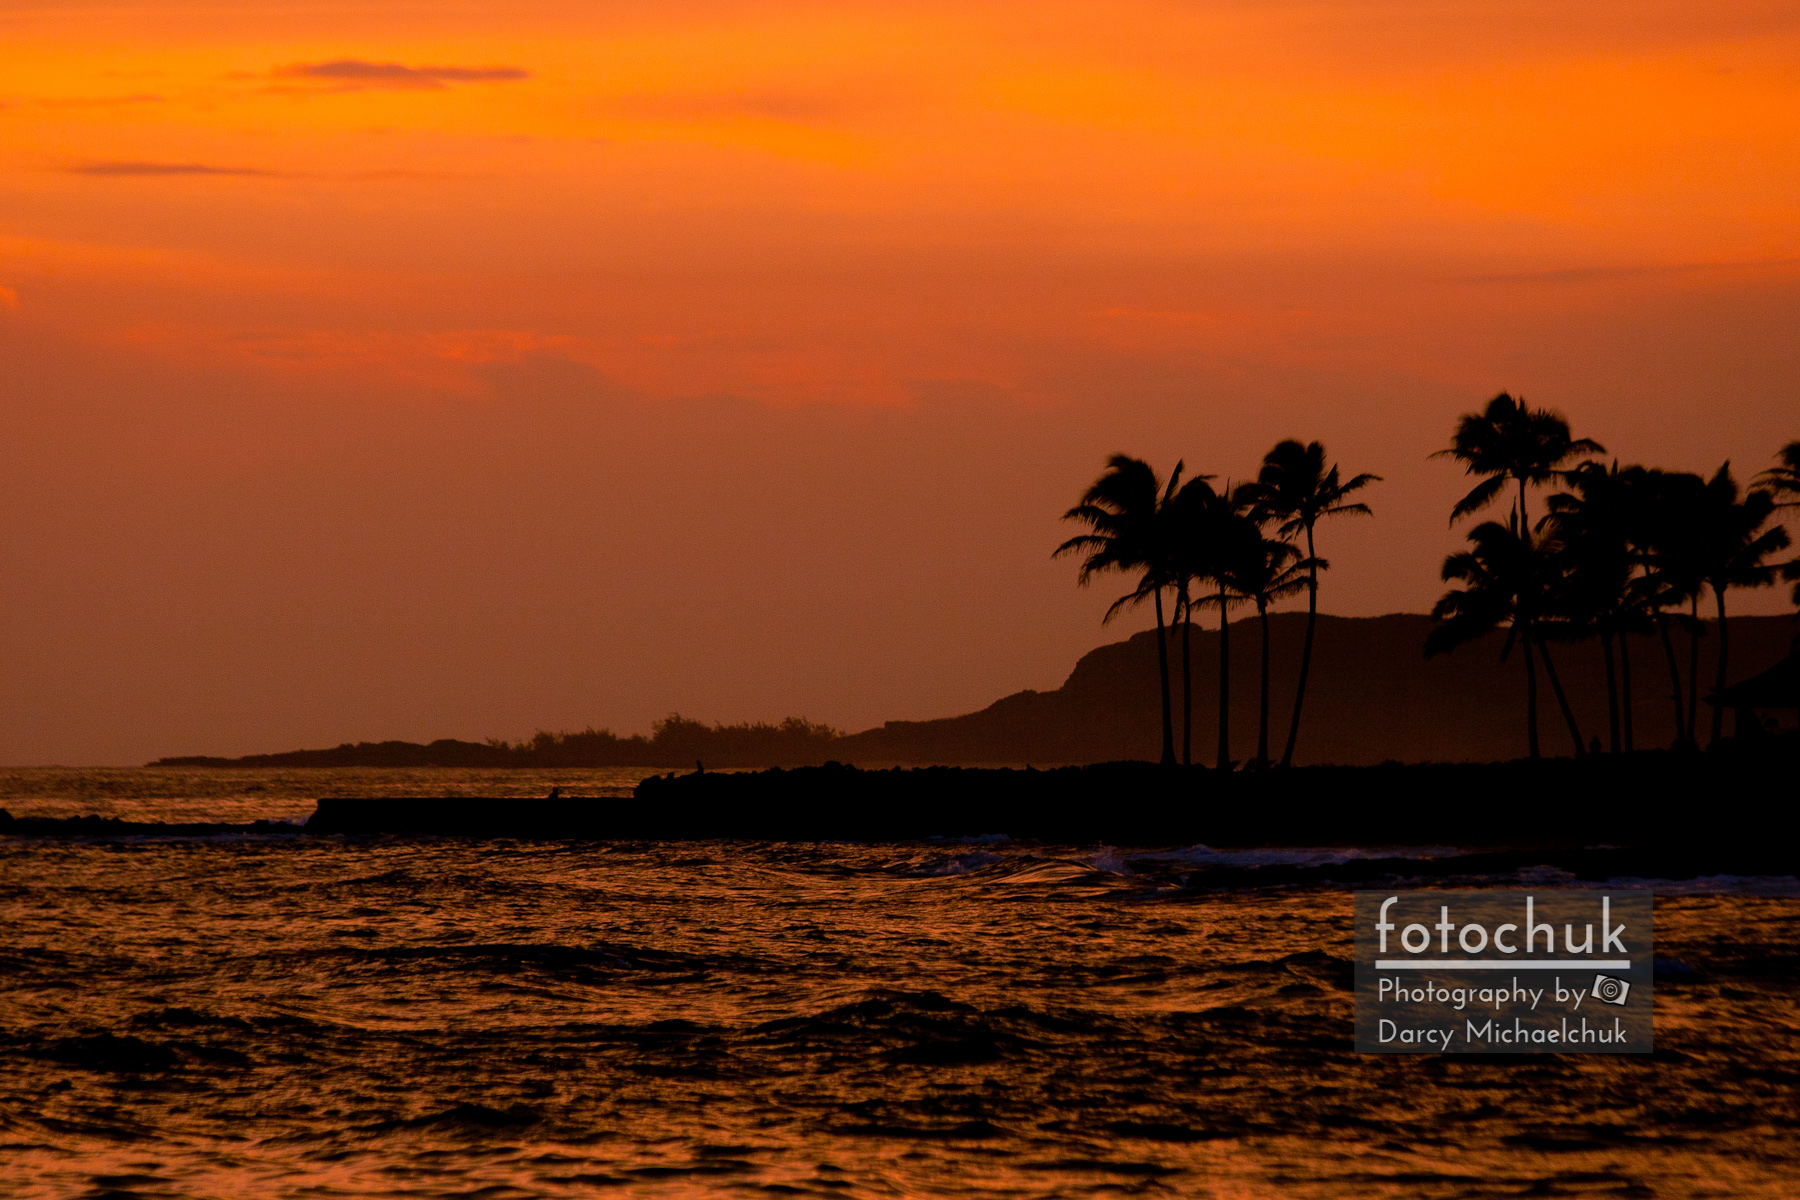 Ocean Sunset with Palm Tree Silhouette